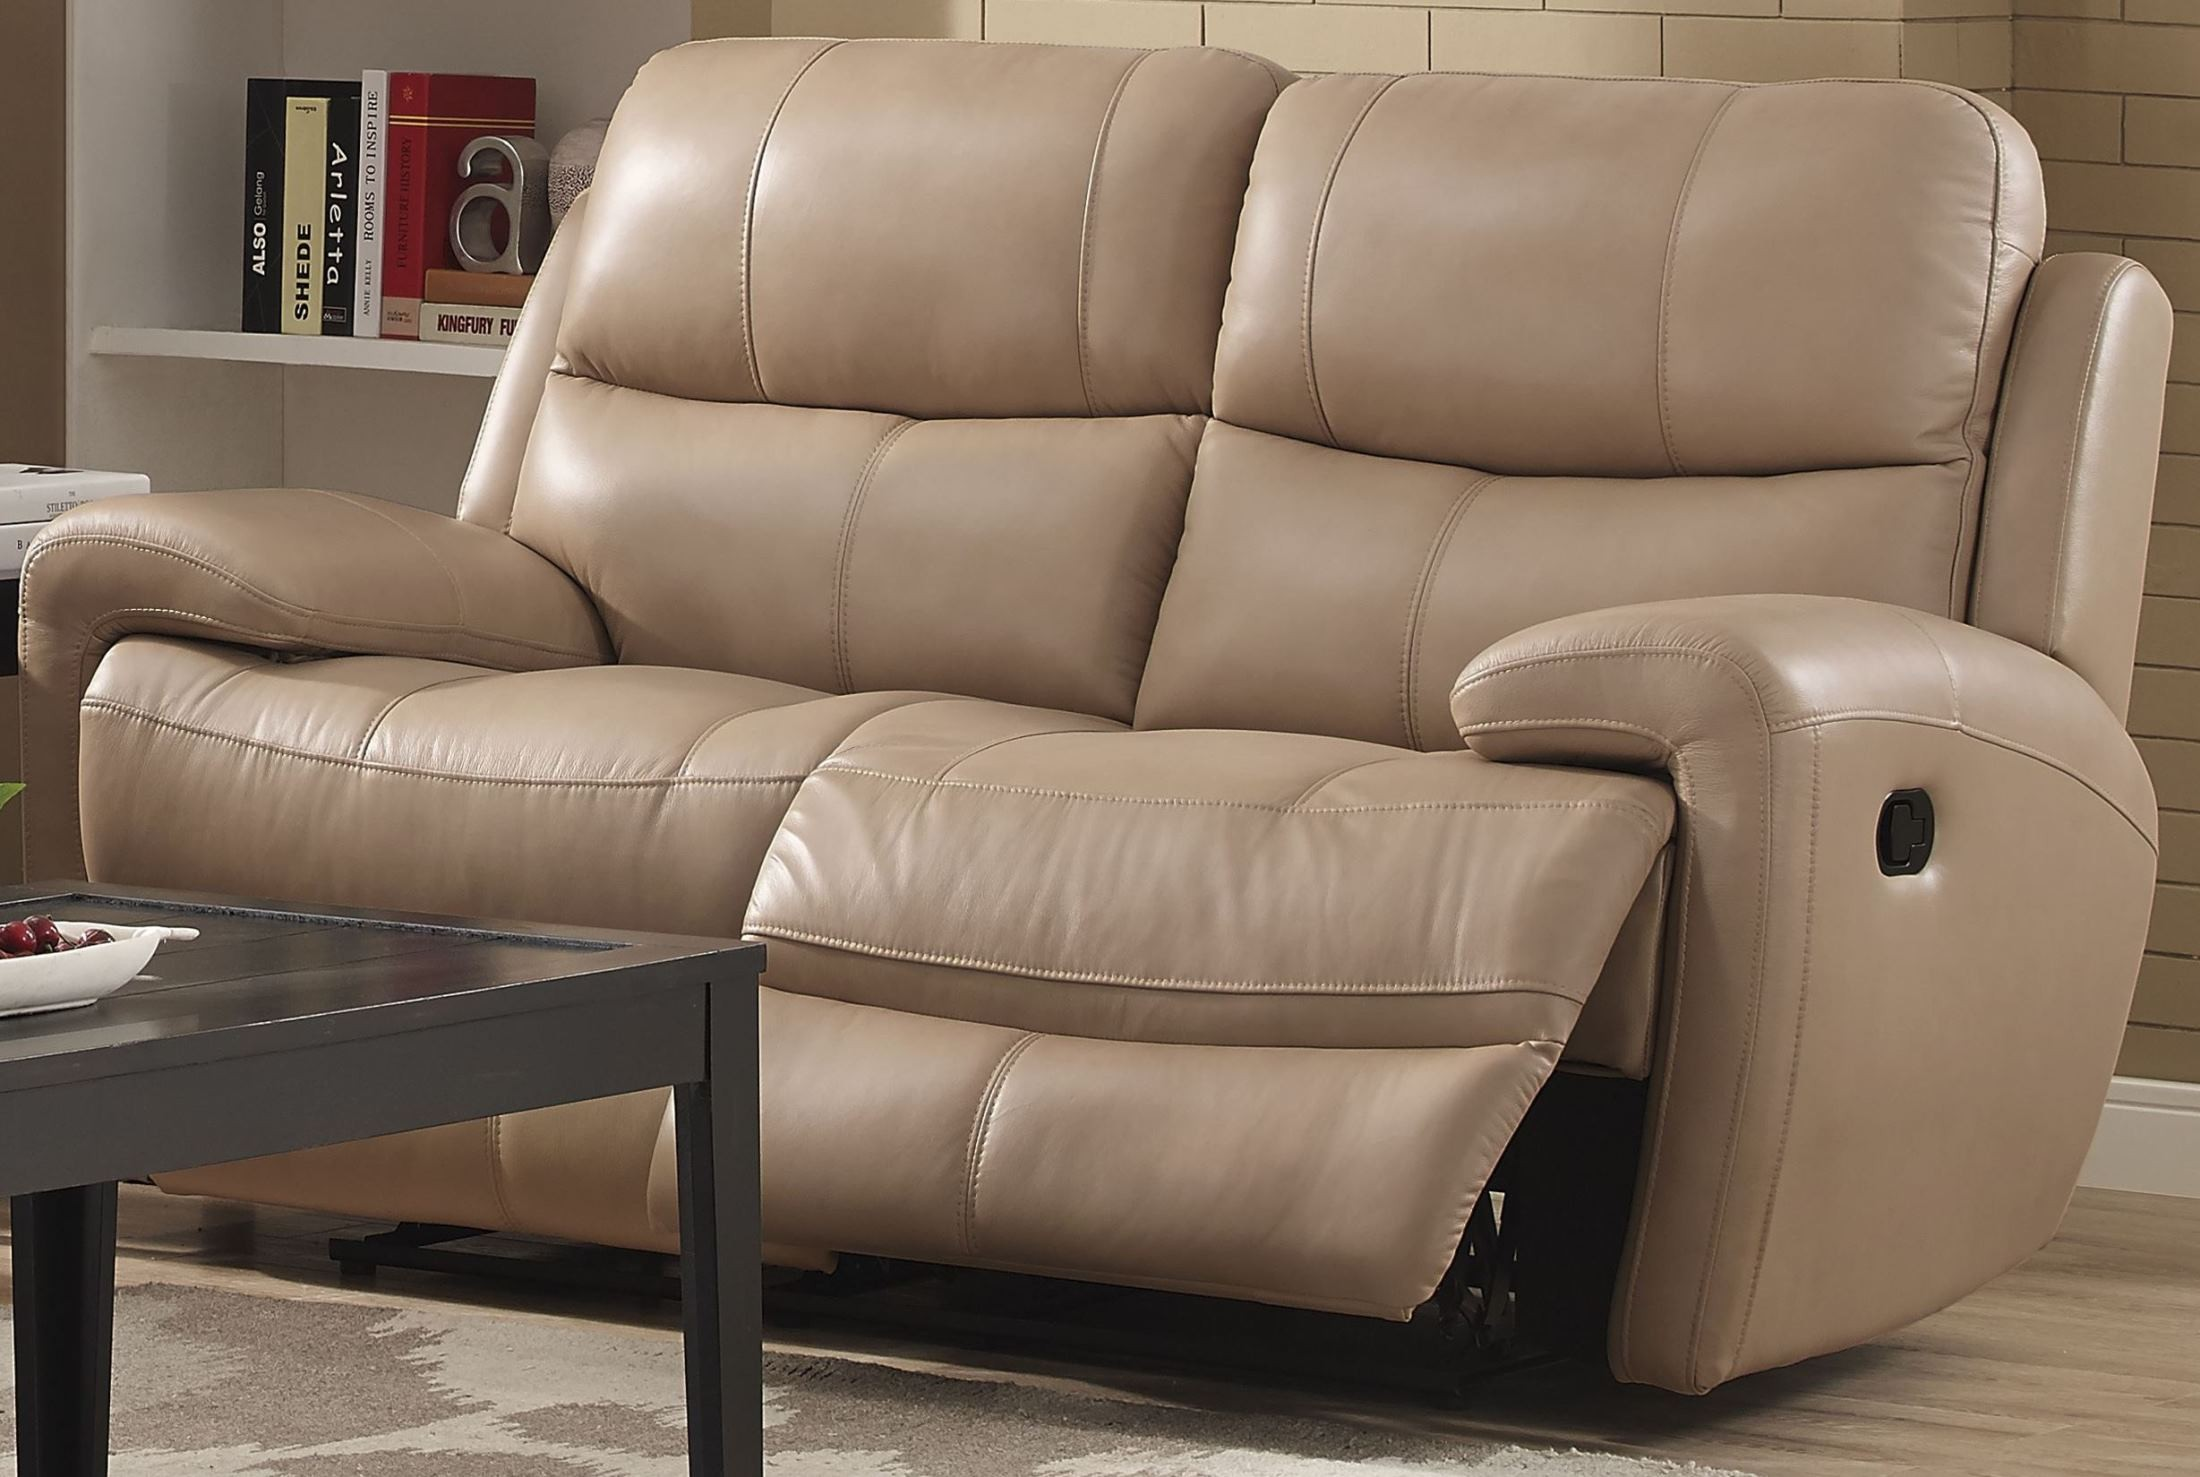 Boulevard taupe dual reclining loveseat from new classic for Classic loveseat